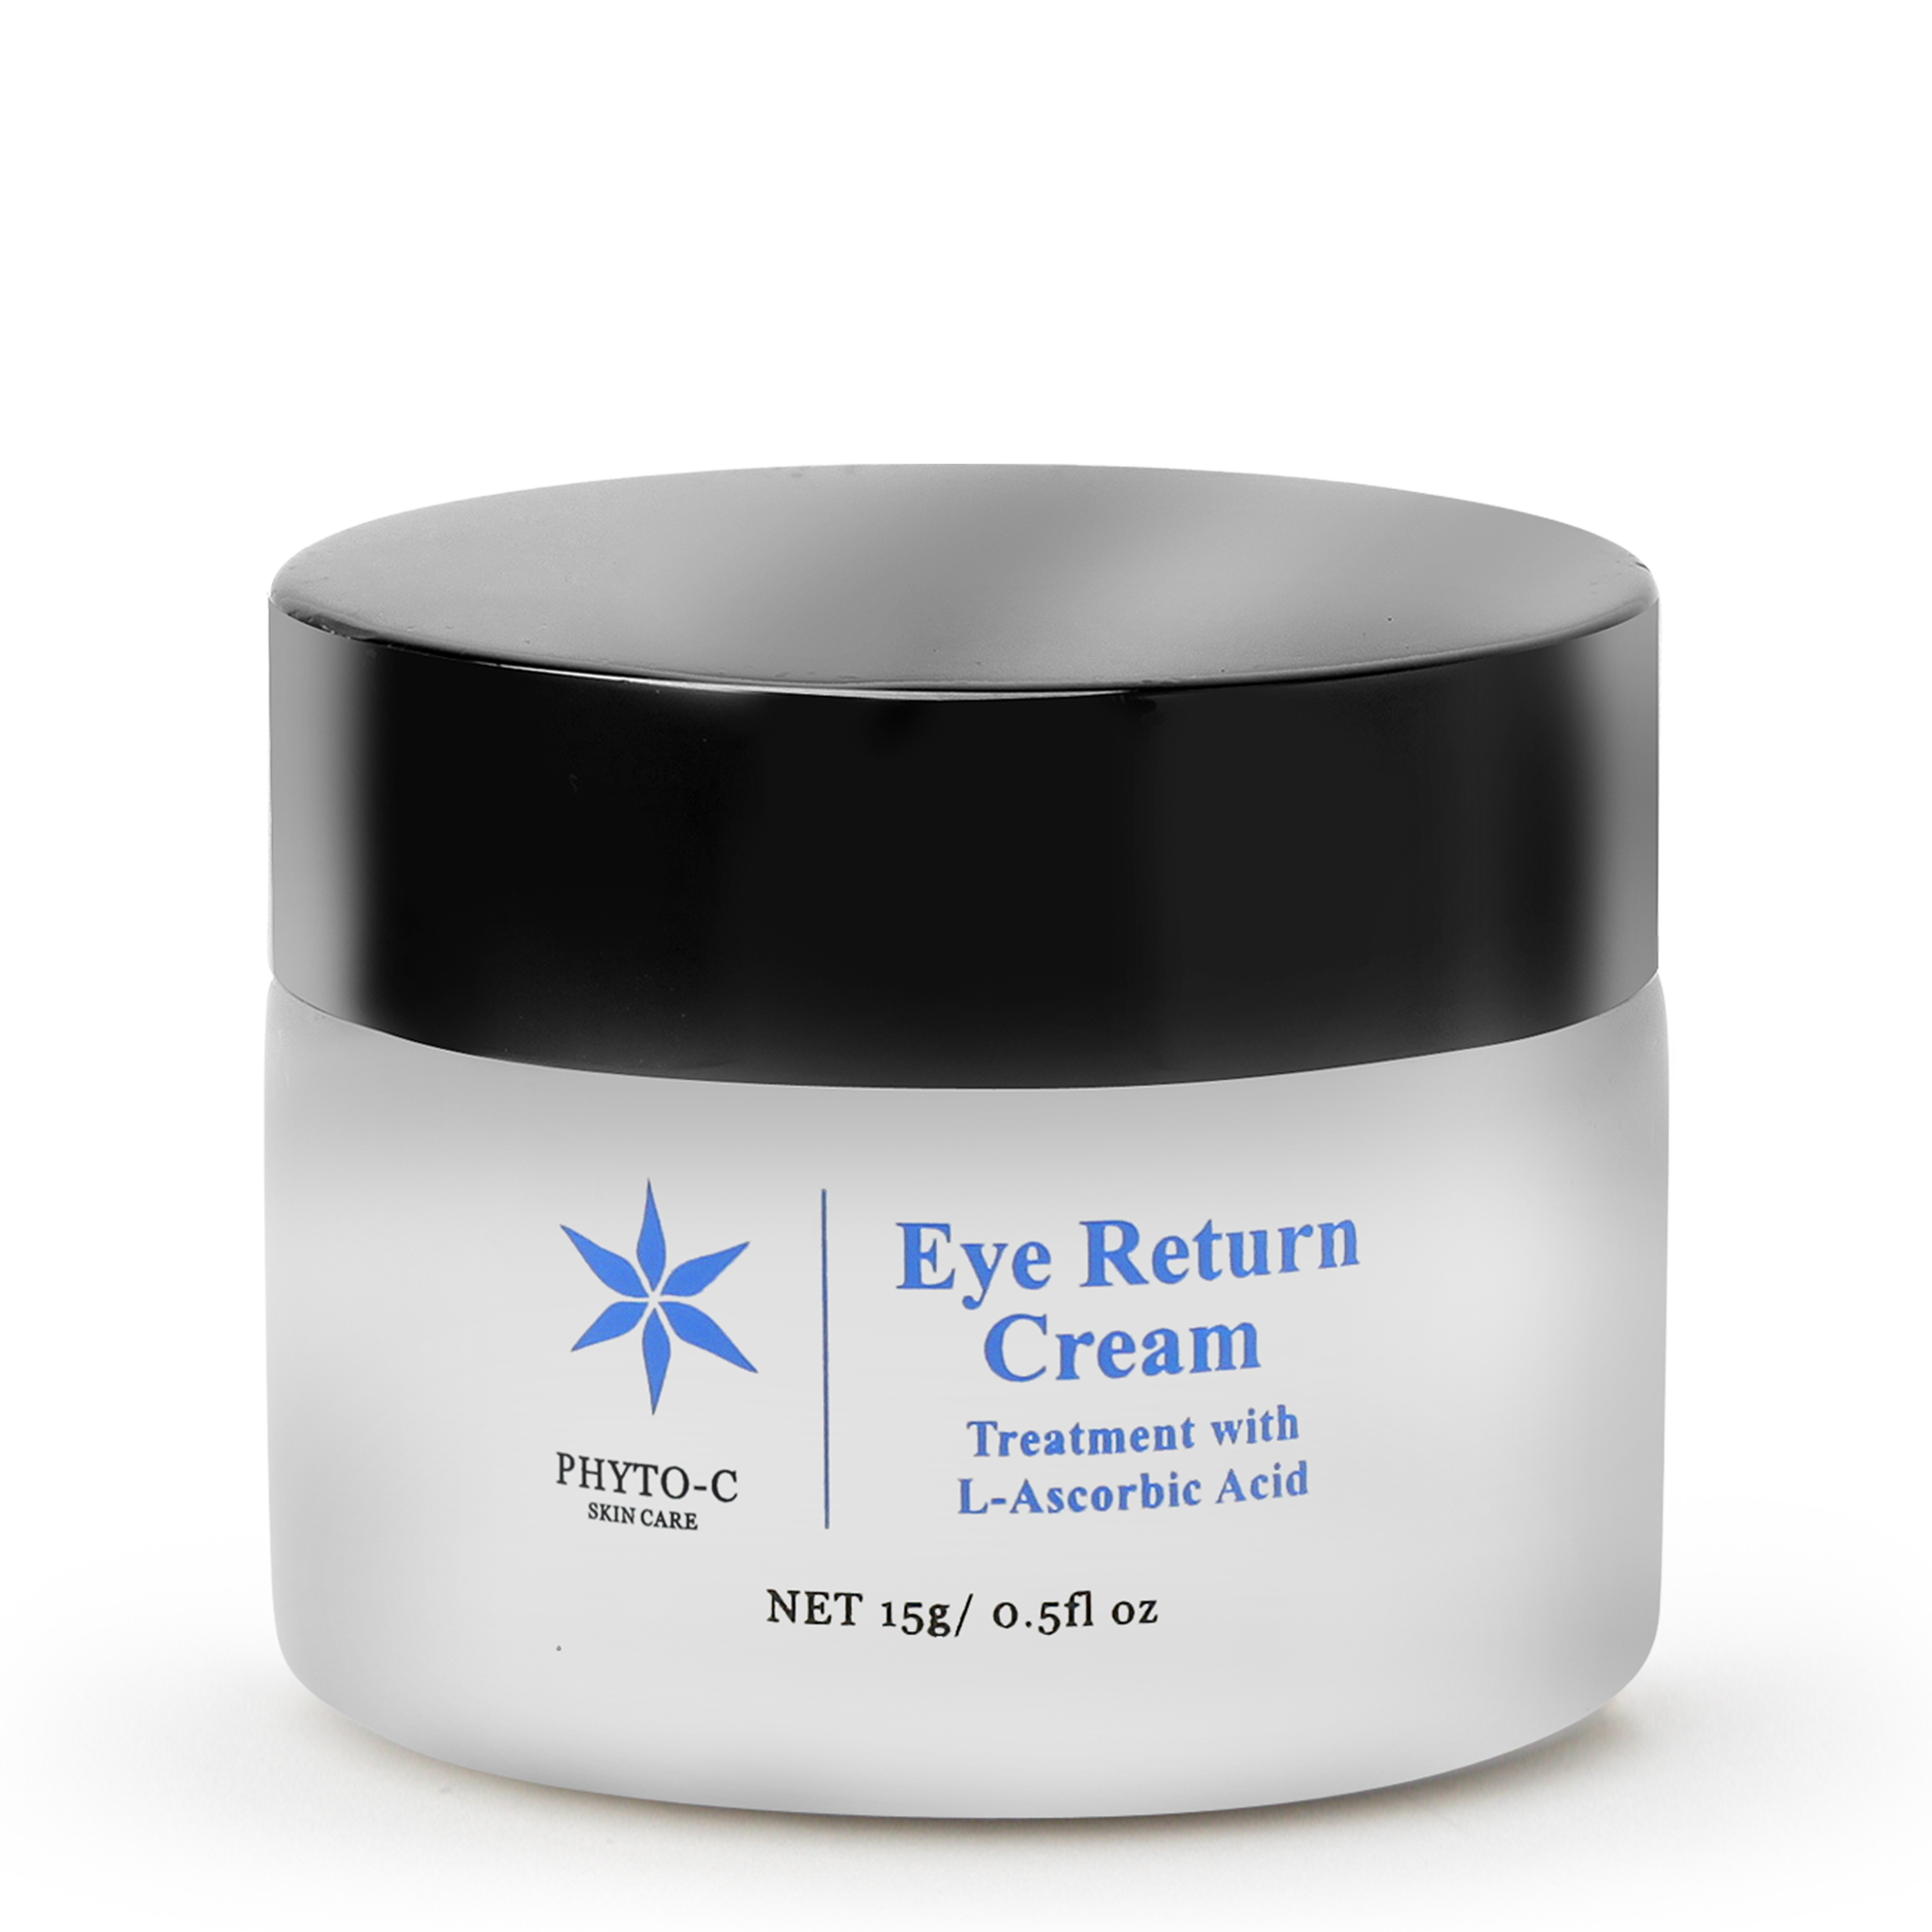 PHYTO-C Восстанавливающий крем для глаз Eye Return Cream 15 гр фото